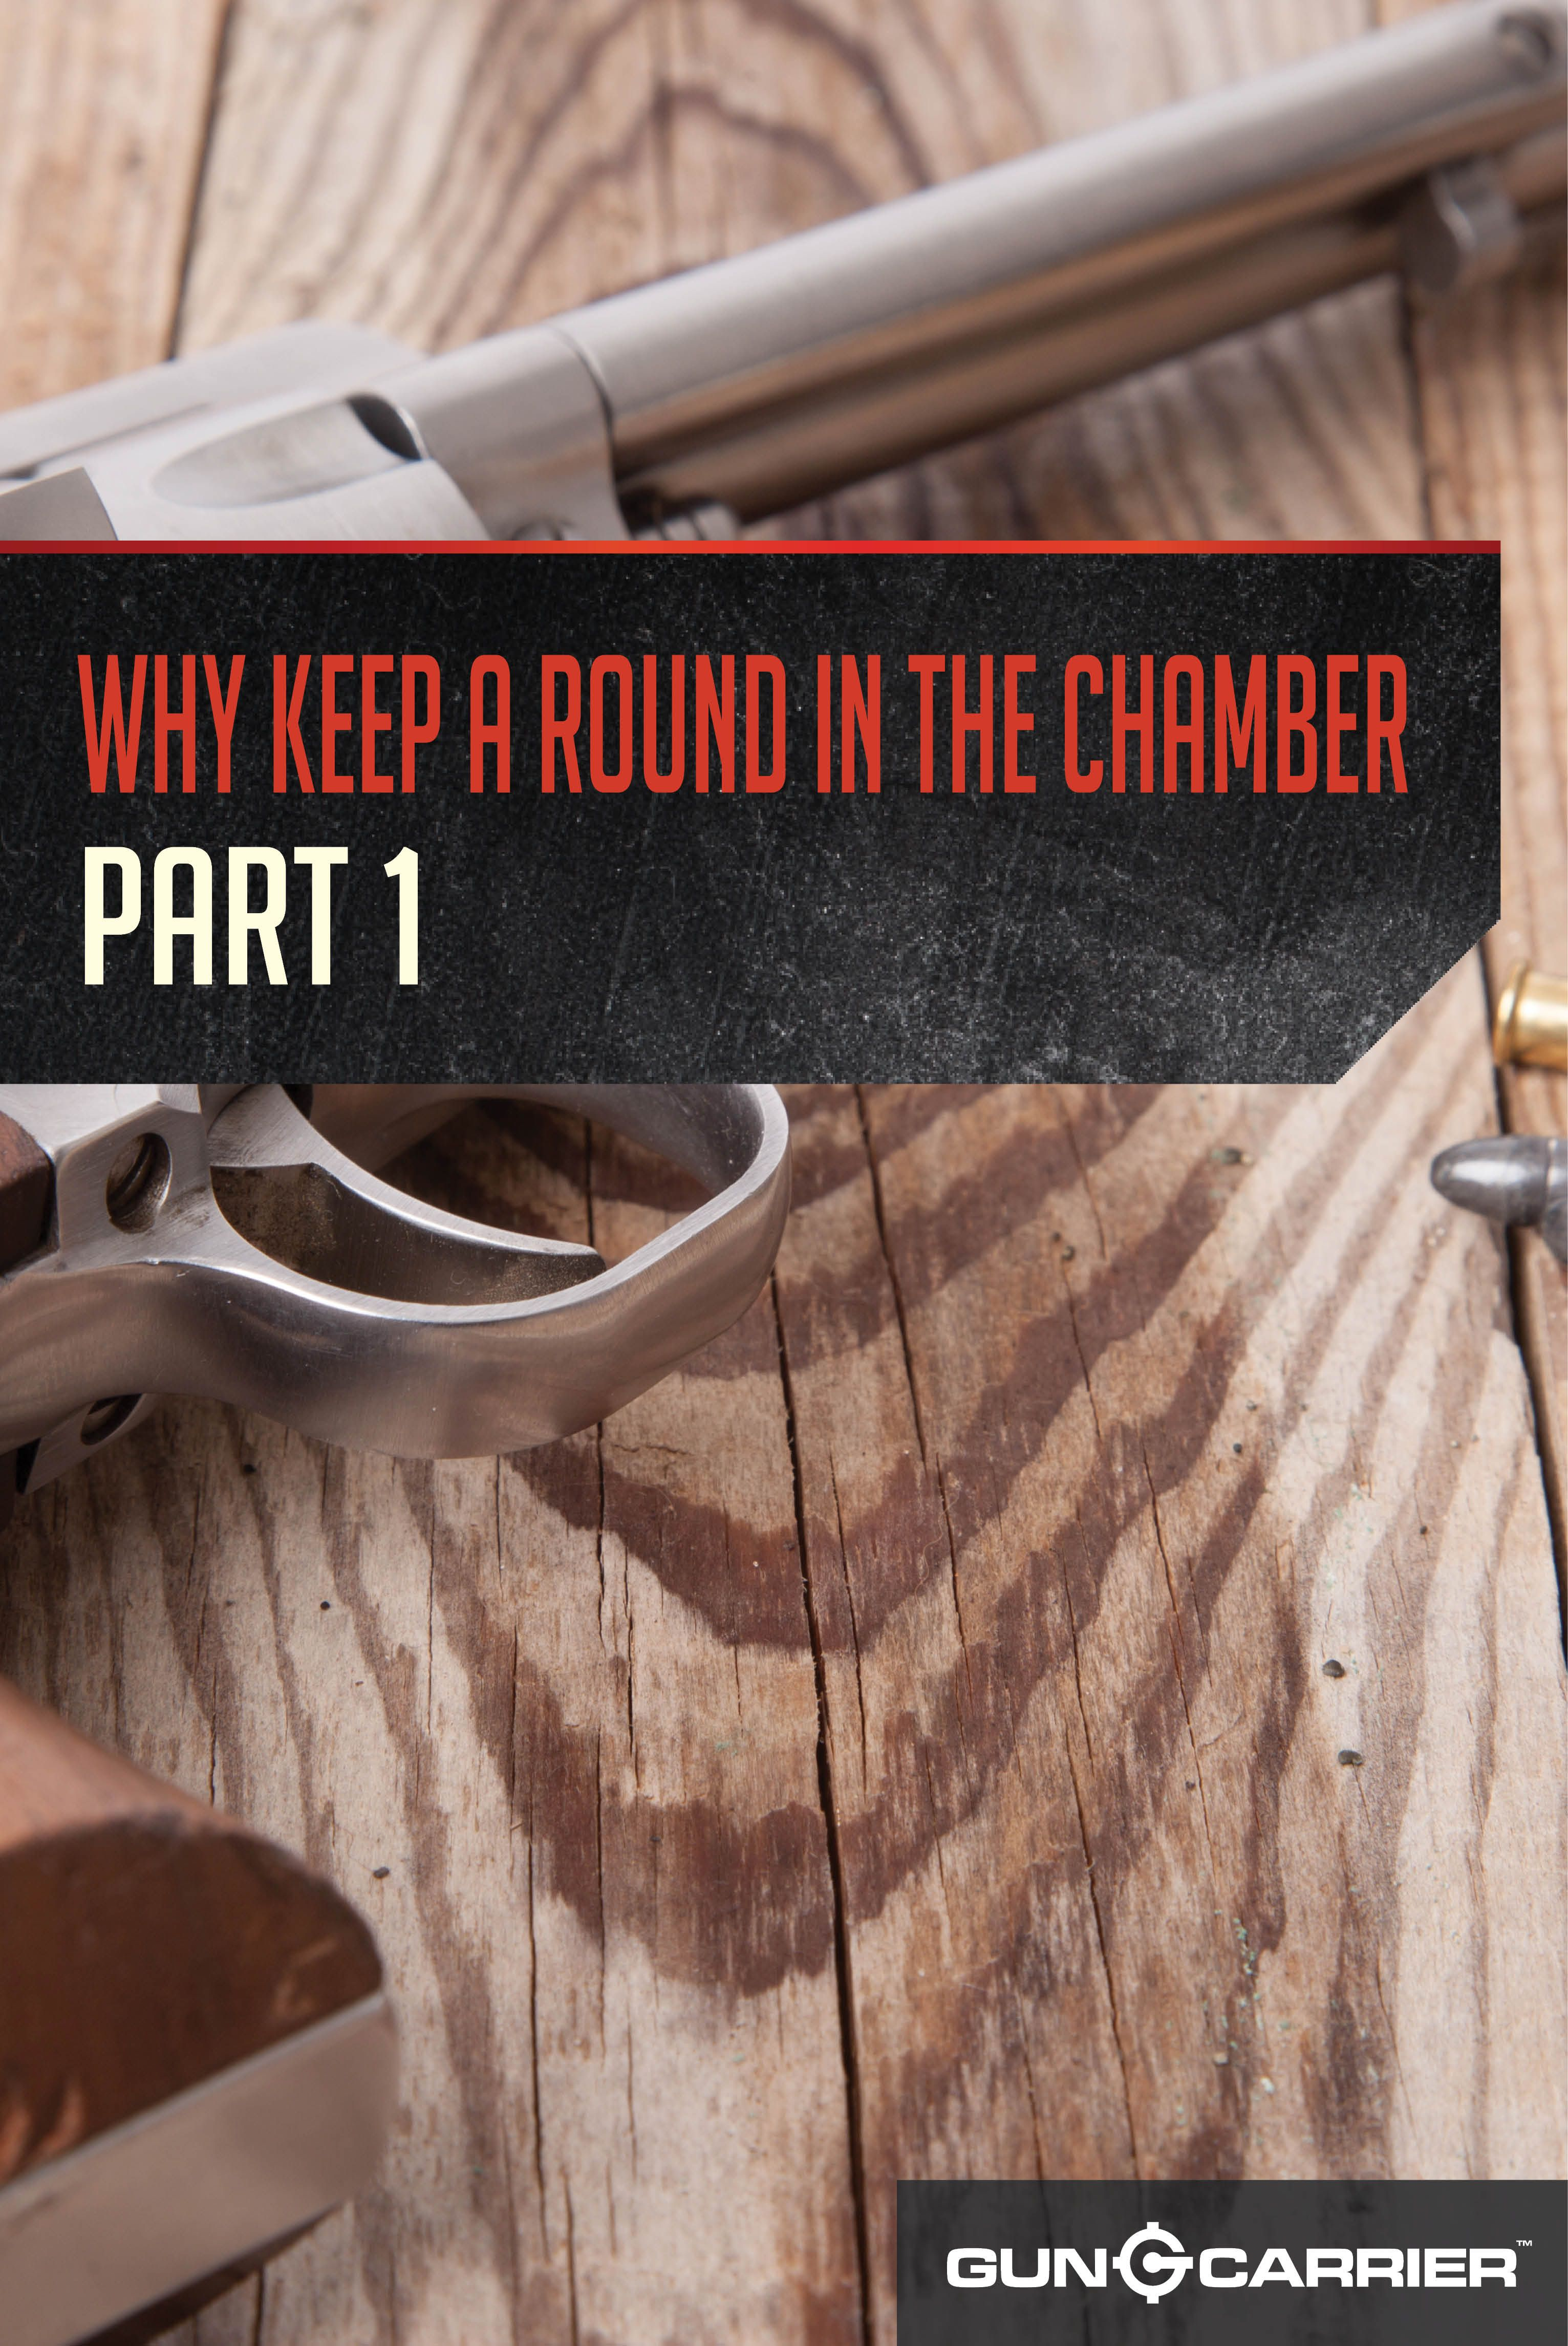 Why Carry With a Round in the Chamber Part 1 (With images